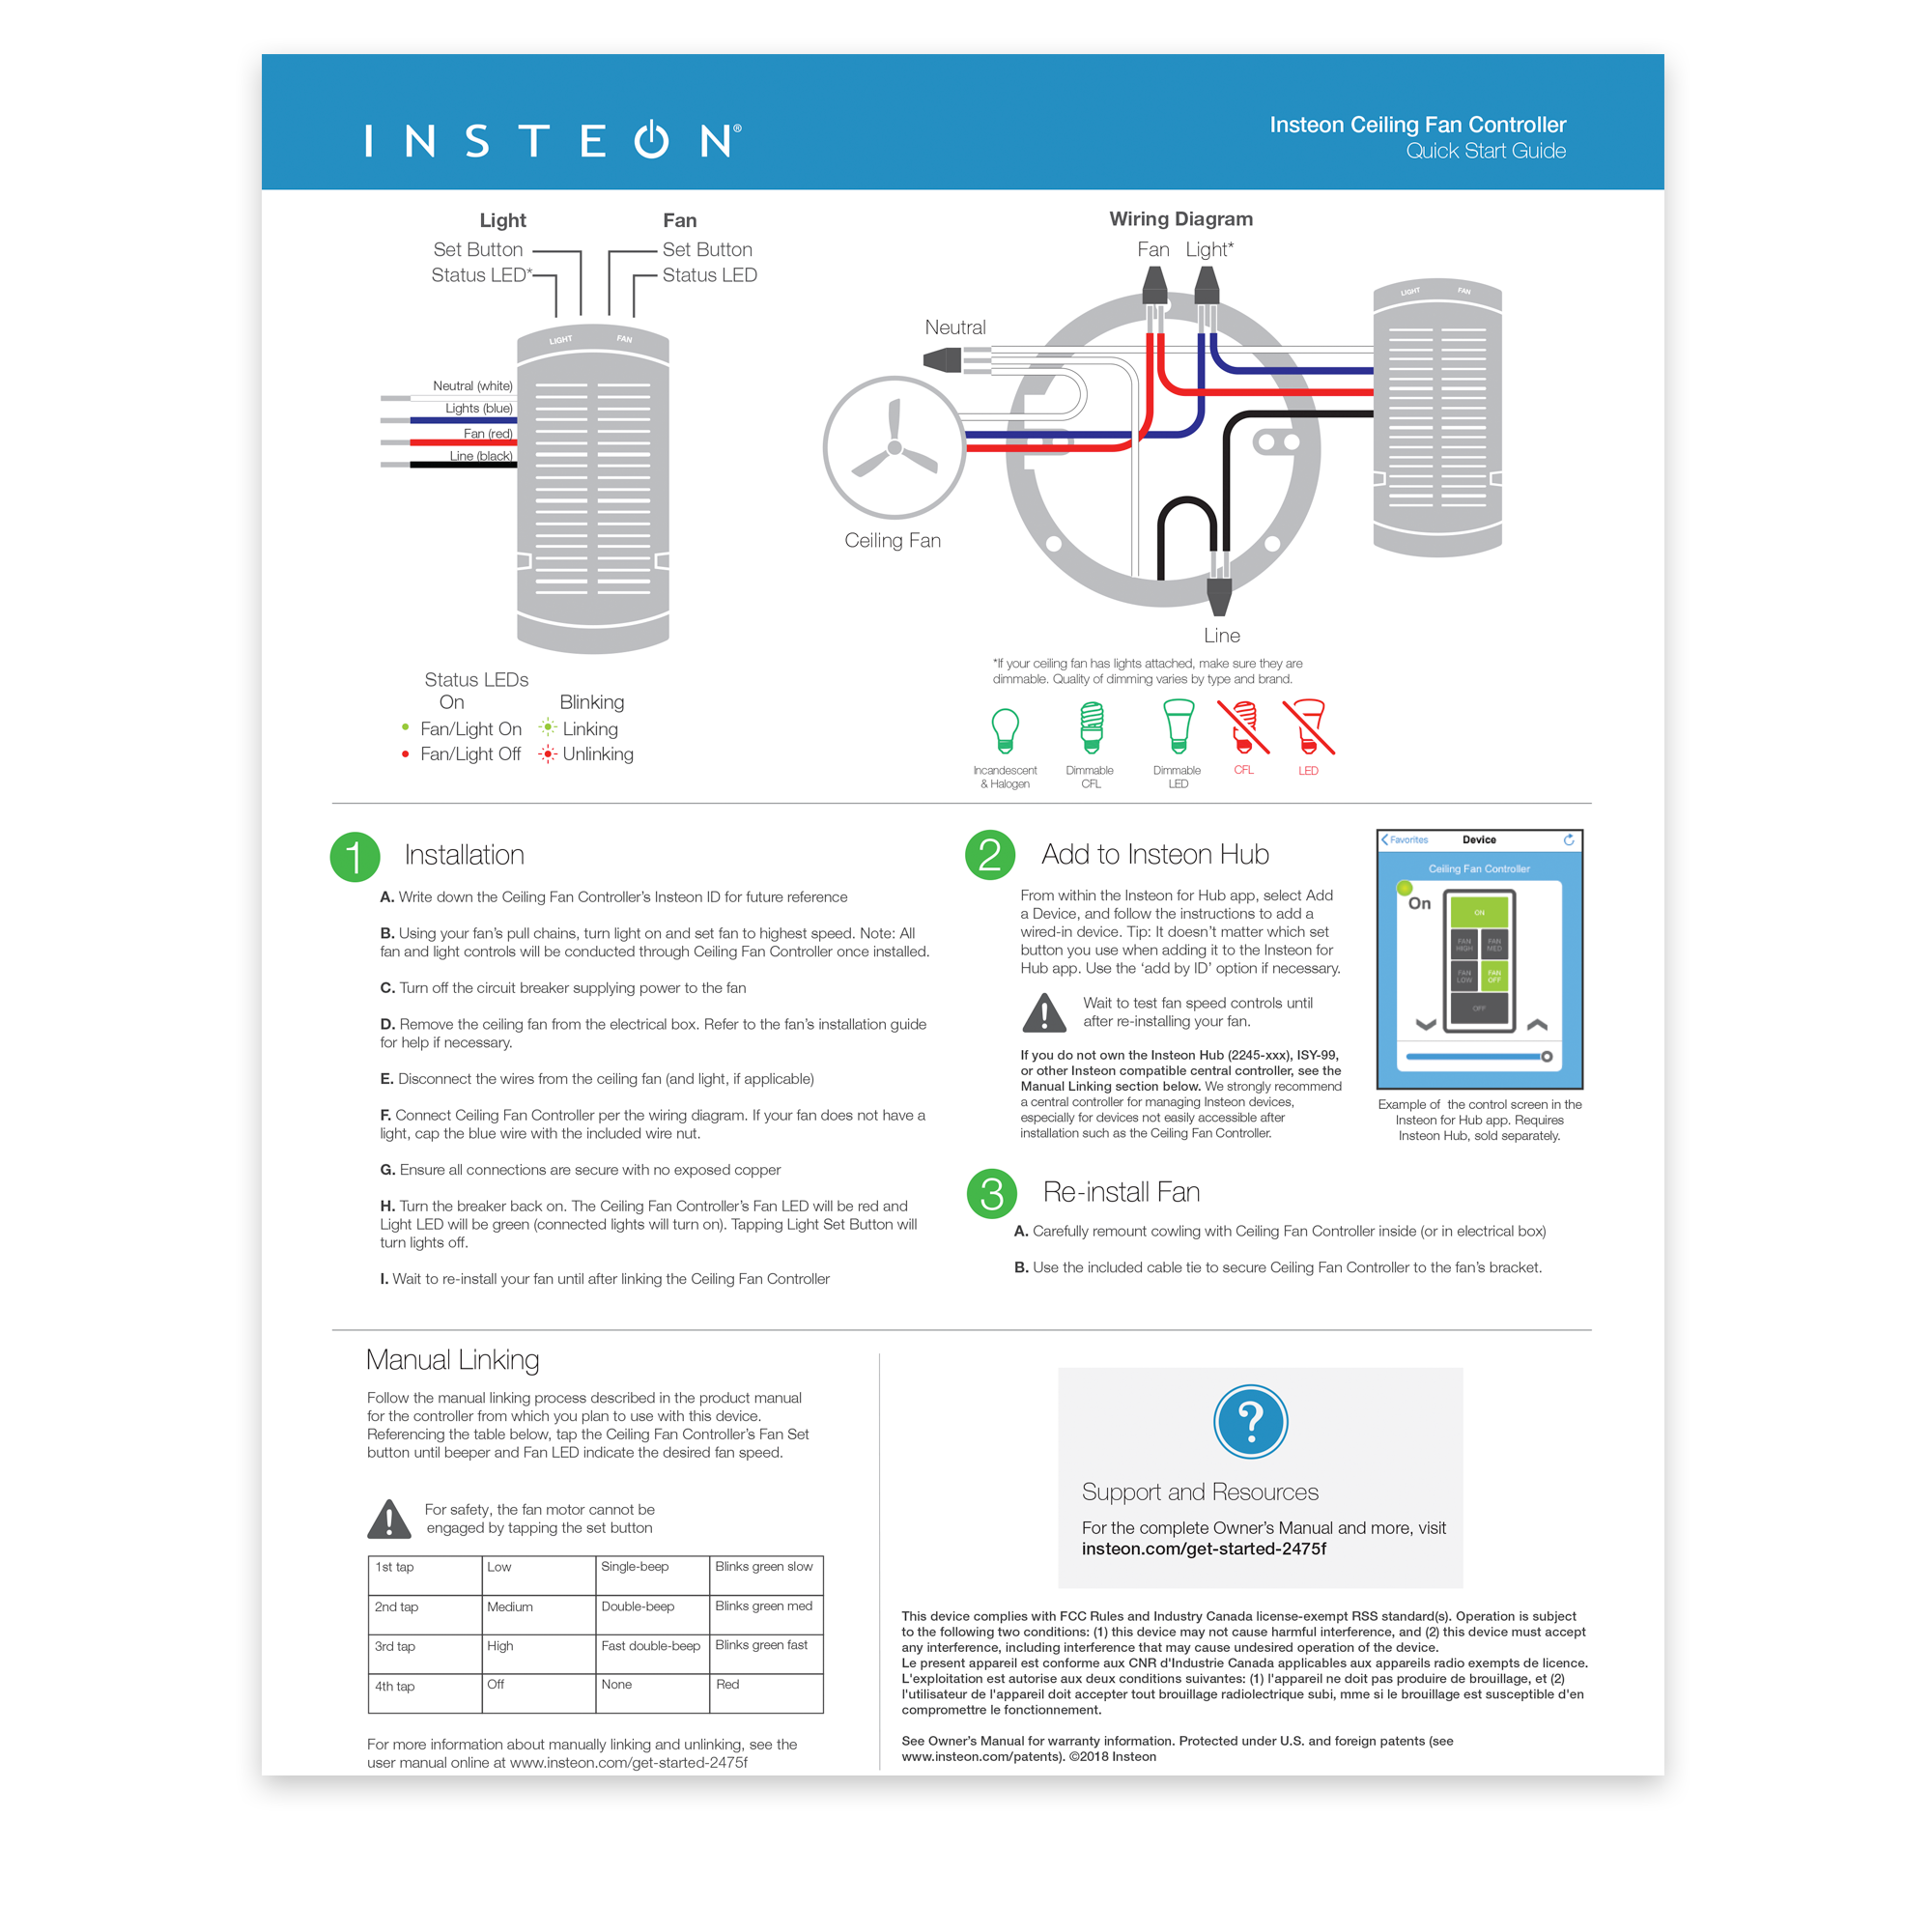 insteon fan controller quick start guide